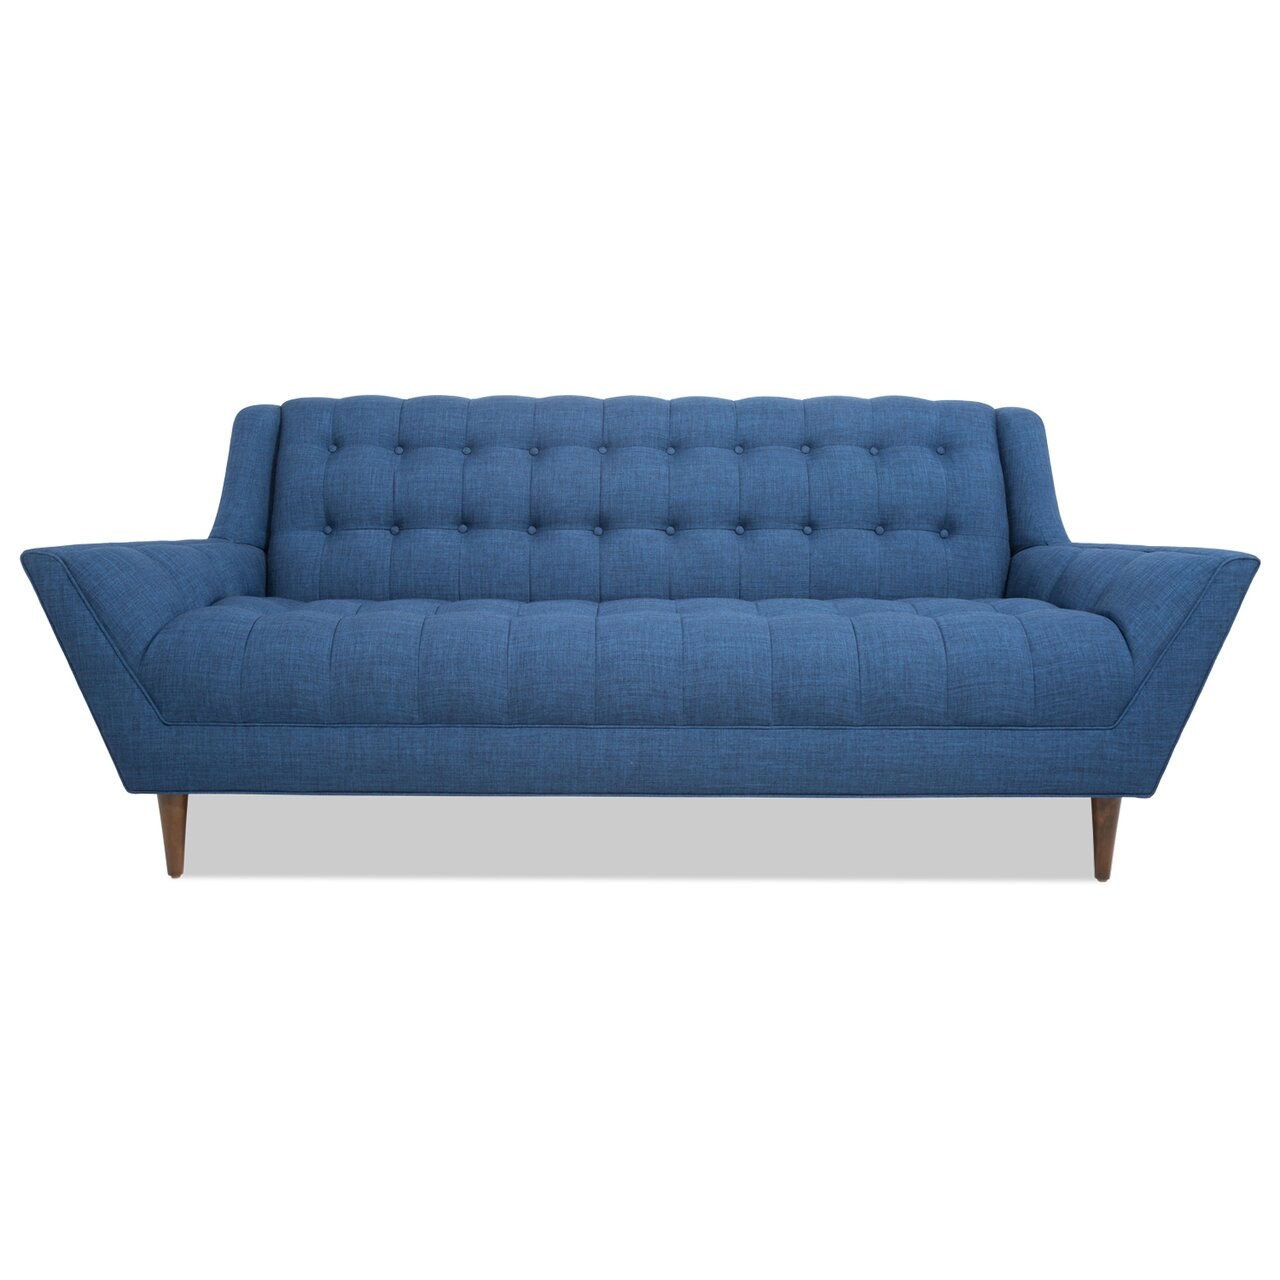 Discount Modern Sofas Designer Sectional Sofas Discount Sofa Design Discount Modern Furniture